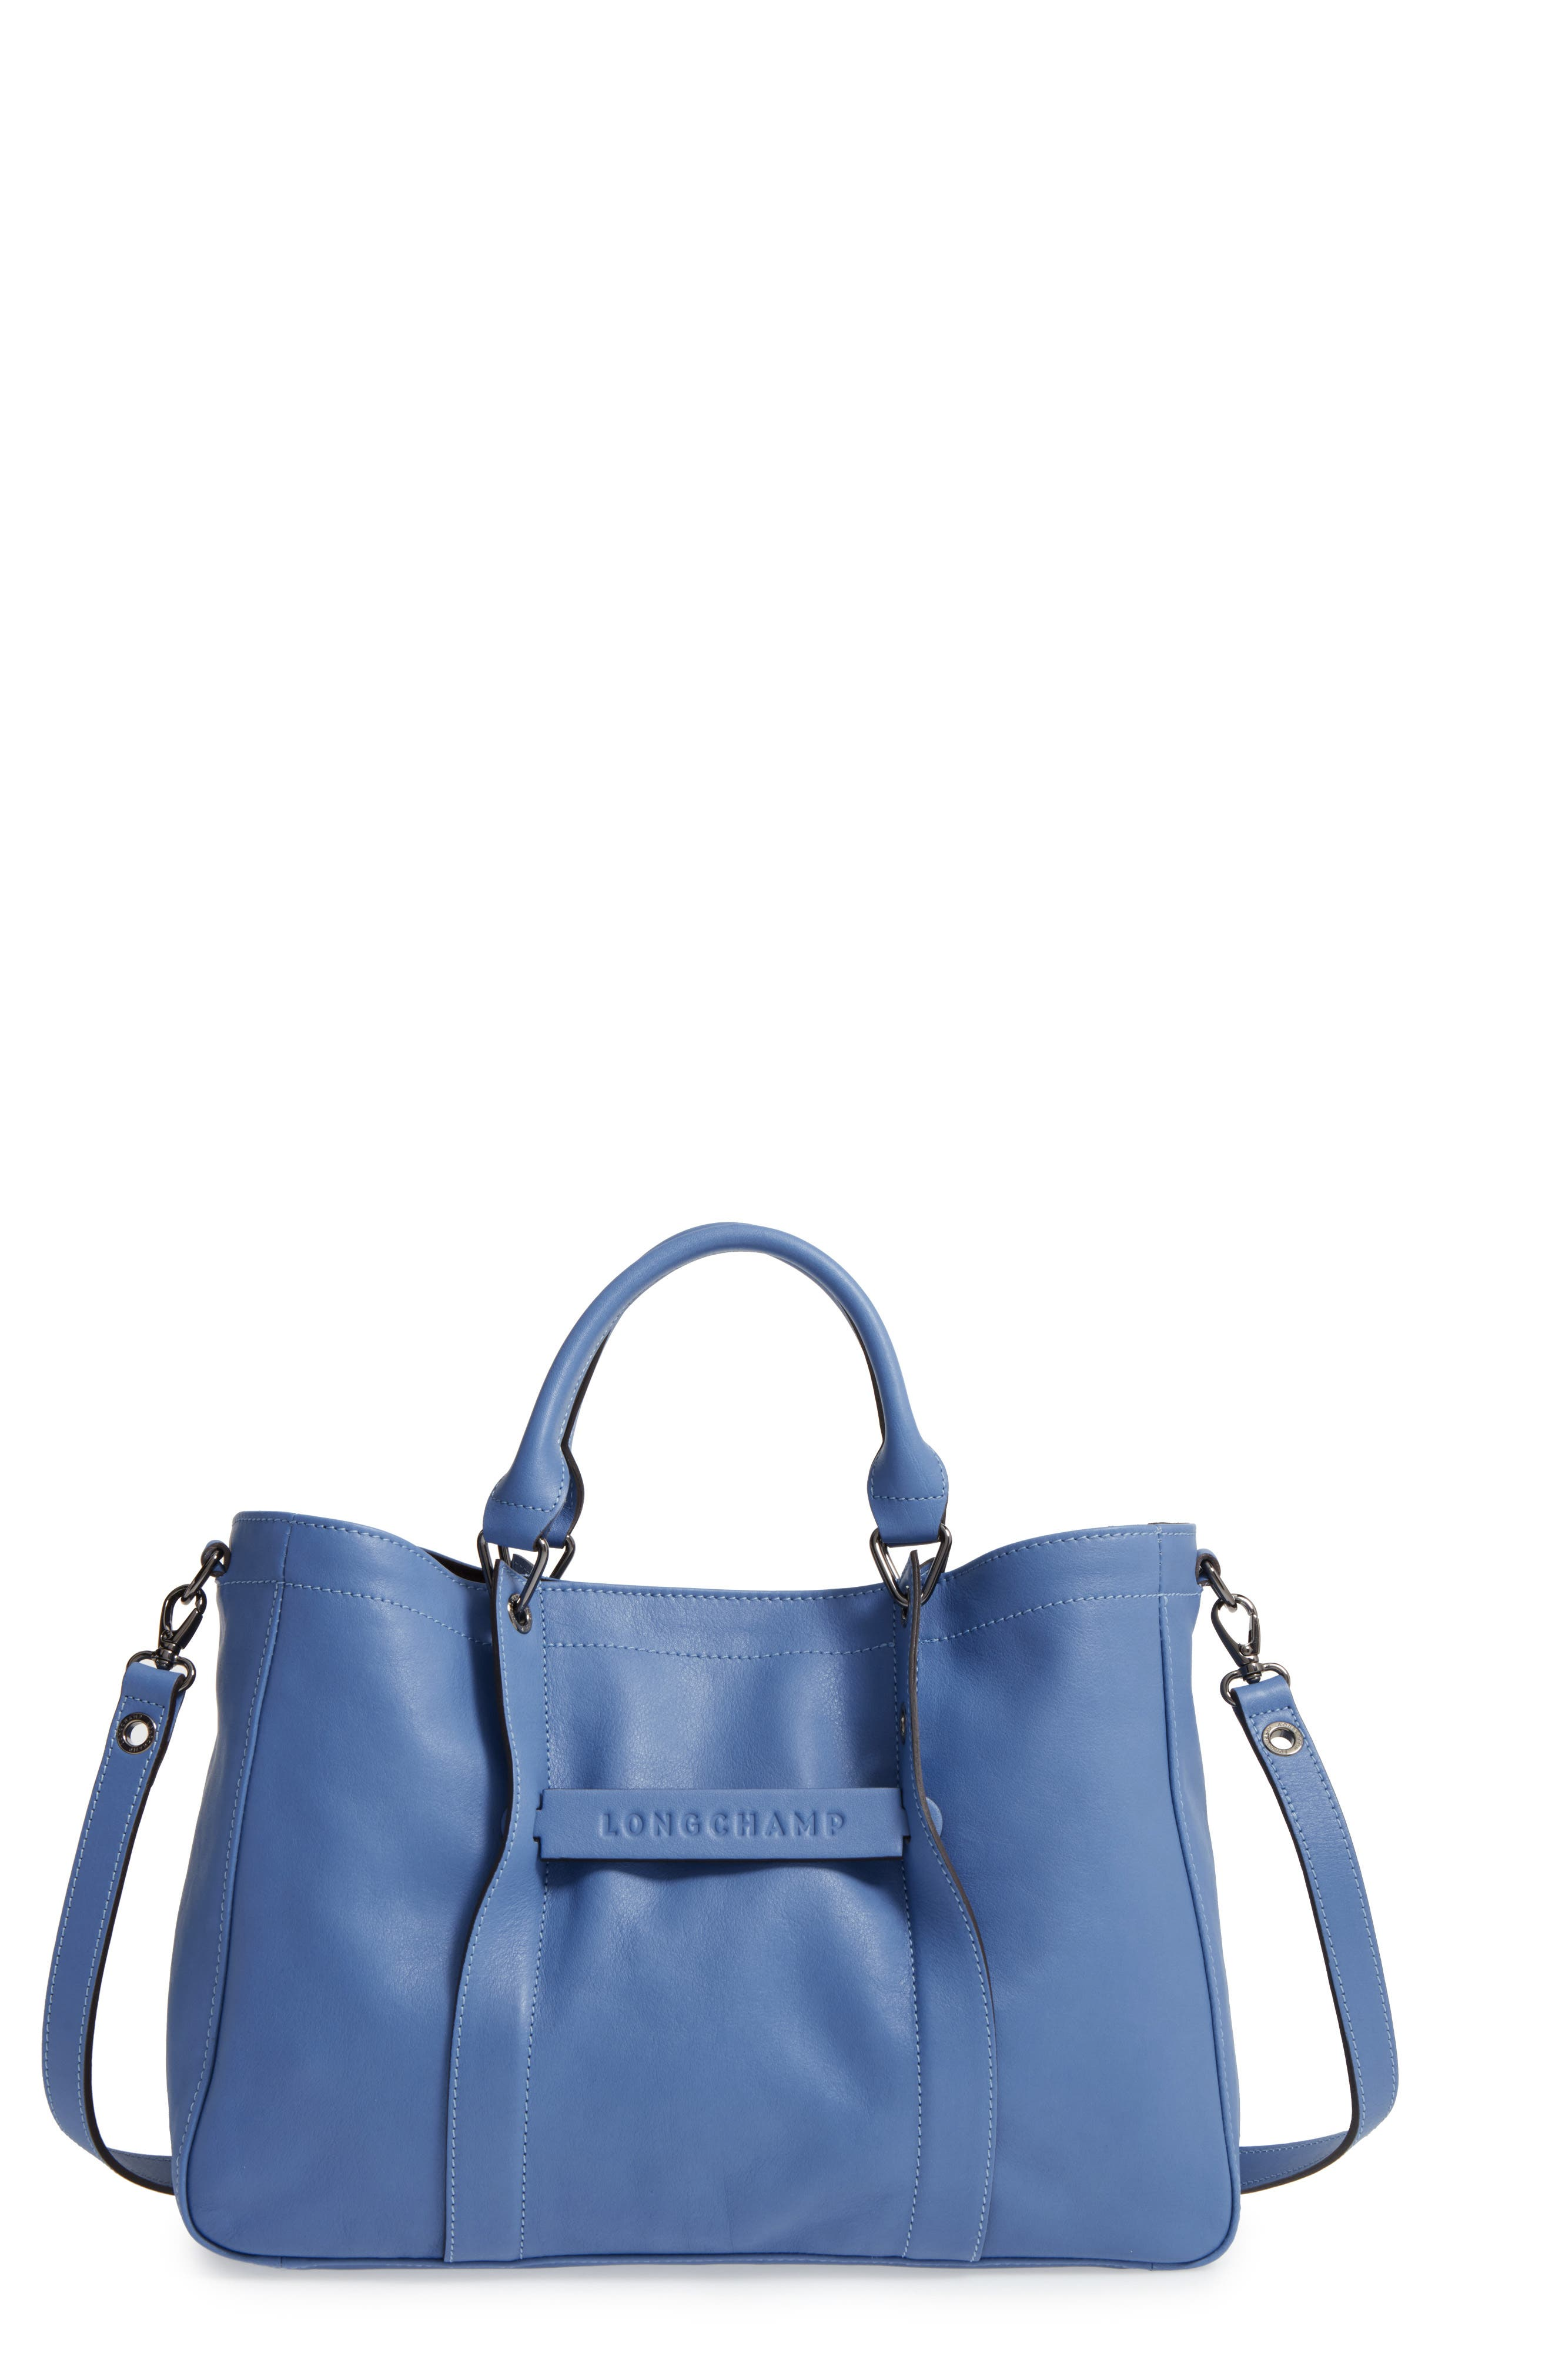 Main Image - Longchamp '3D - Small' Leather Tote